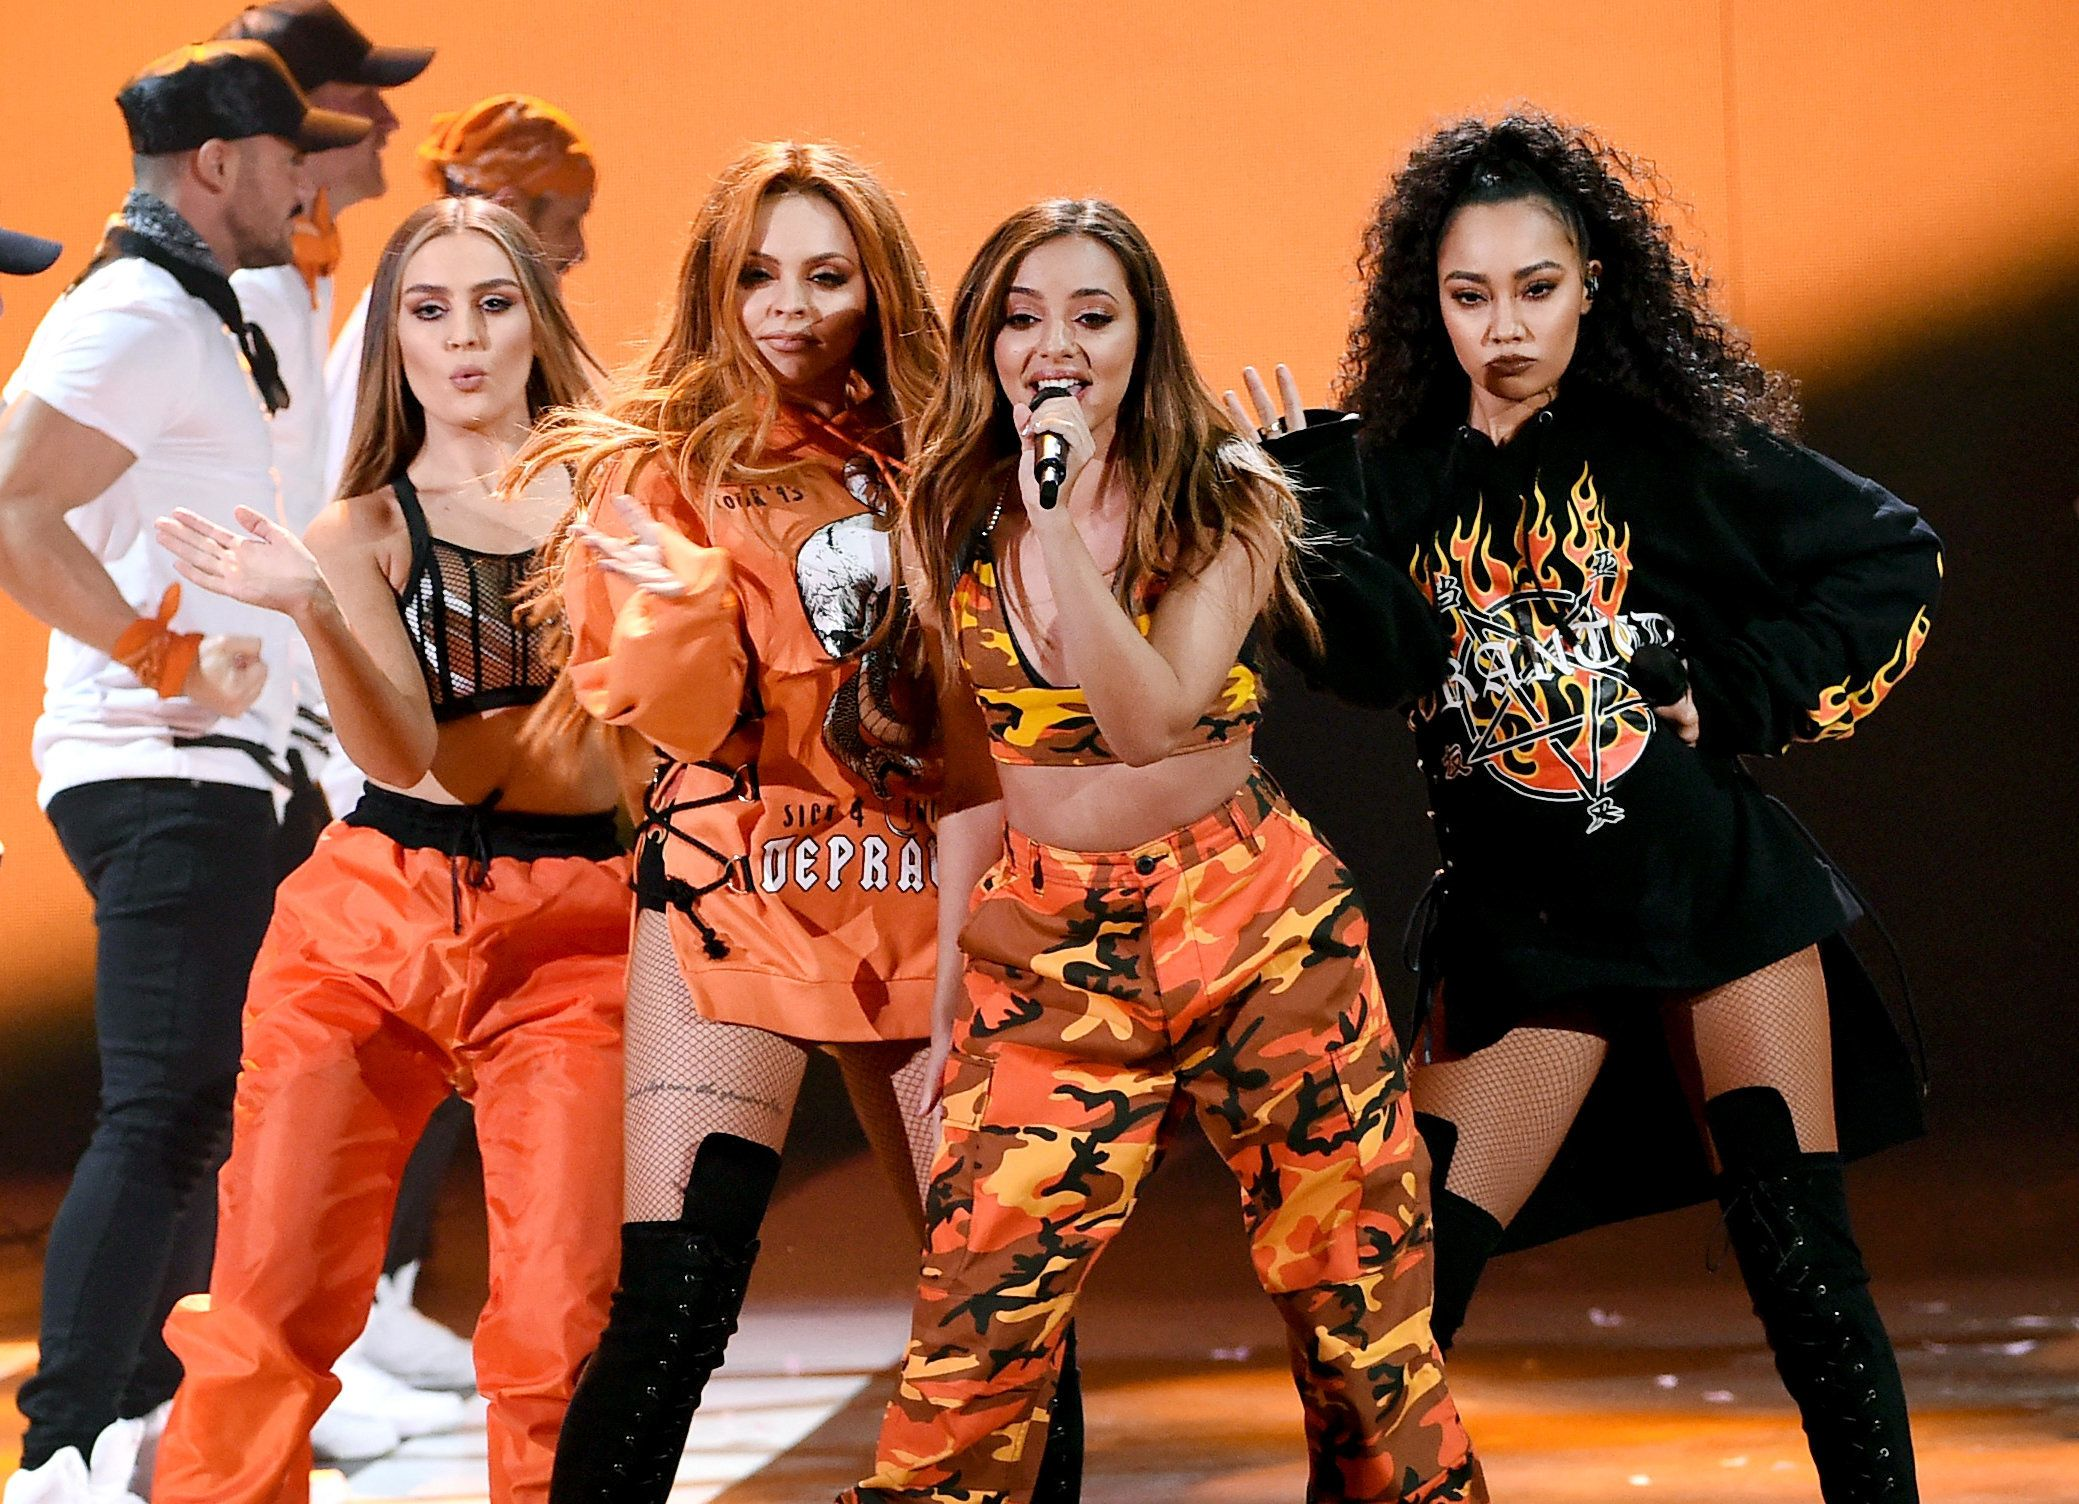 Little Mix's Latest Music Video Will Reportedly Feature Some Pretty Fierce